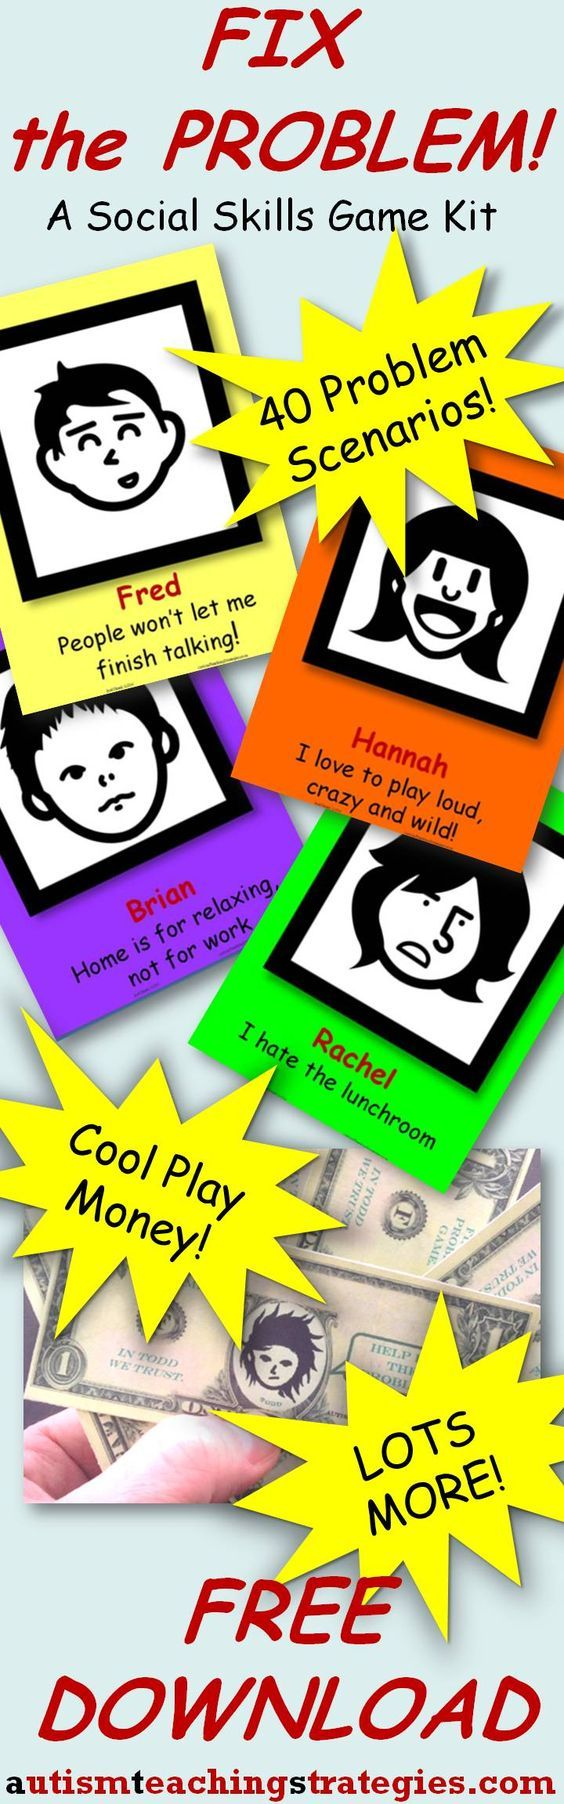 This social skills kit for children with ASD's has 40 problem scenarios, play money, and a PowerPoint option when you are working with larger groups or classes.  Tags: social skills game, autism, free download.